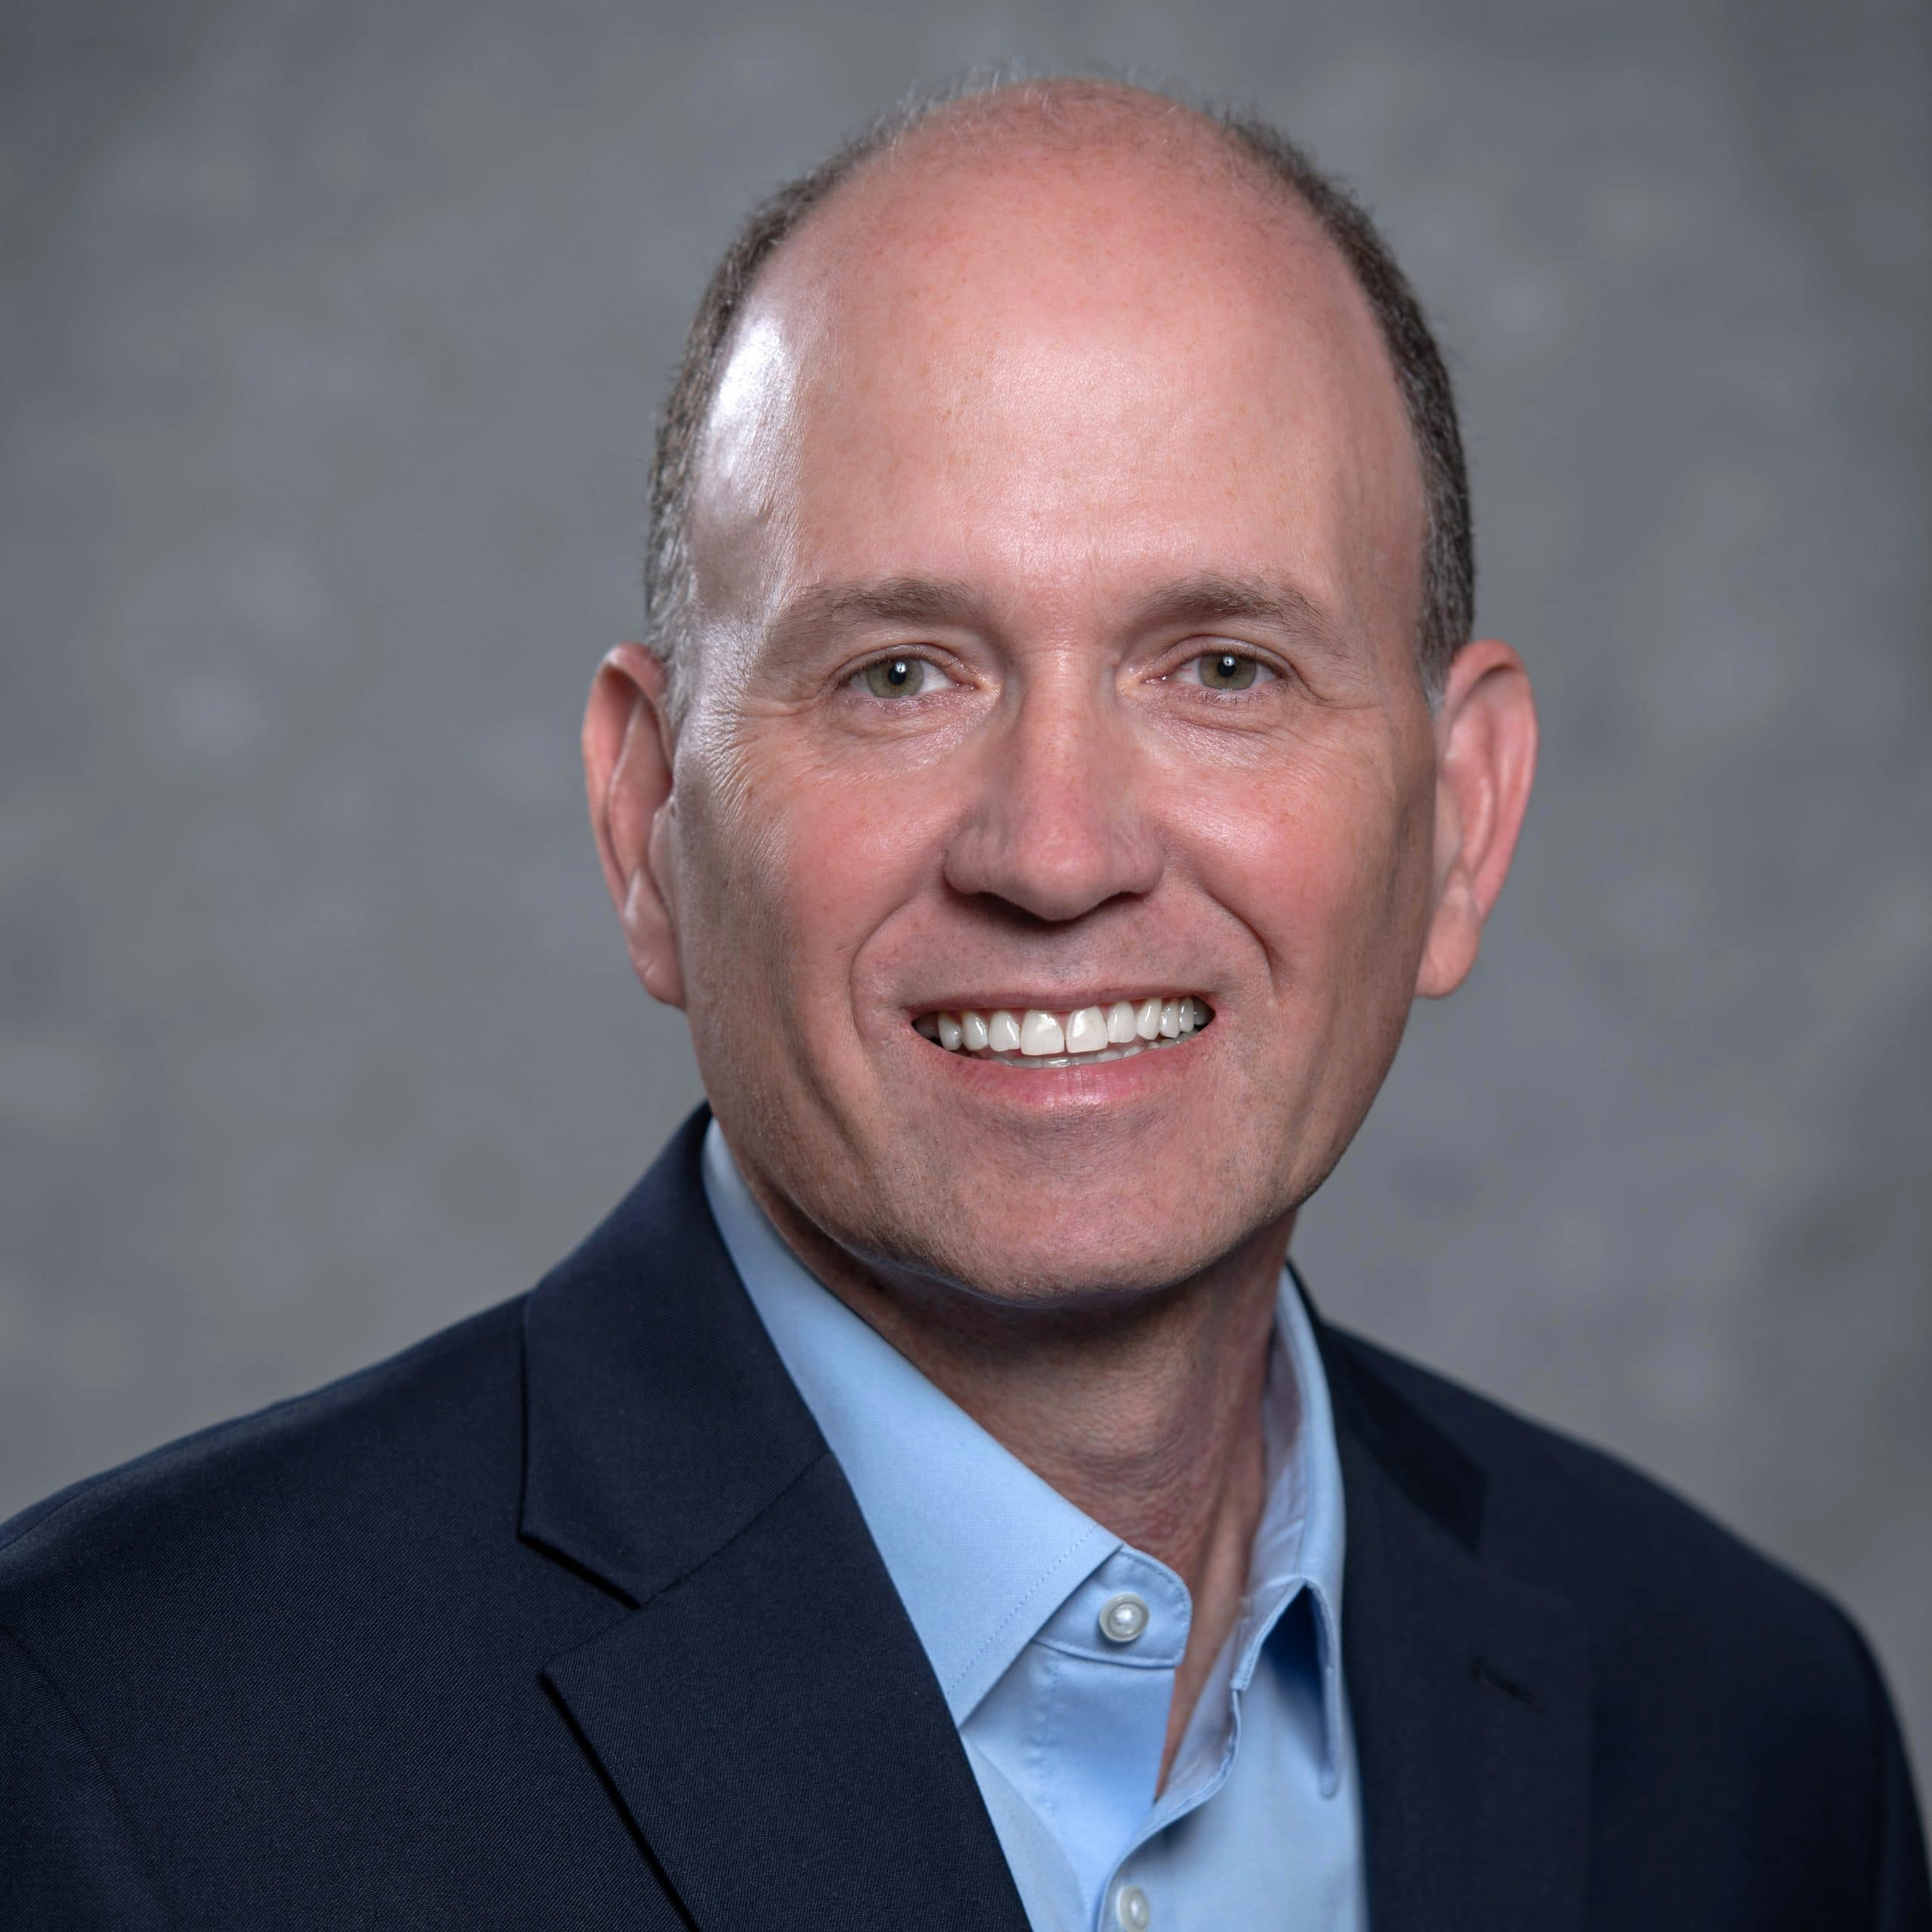 Reed Anderson, Chief Financial Officer